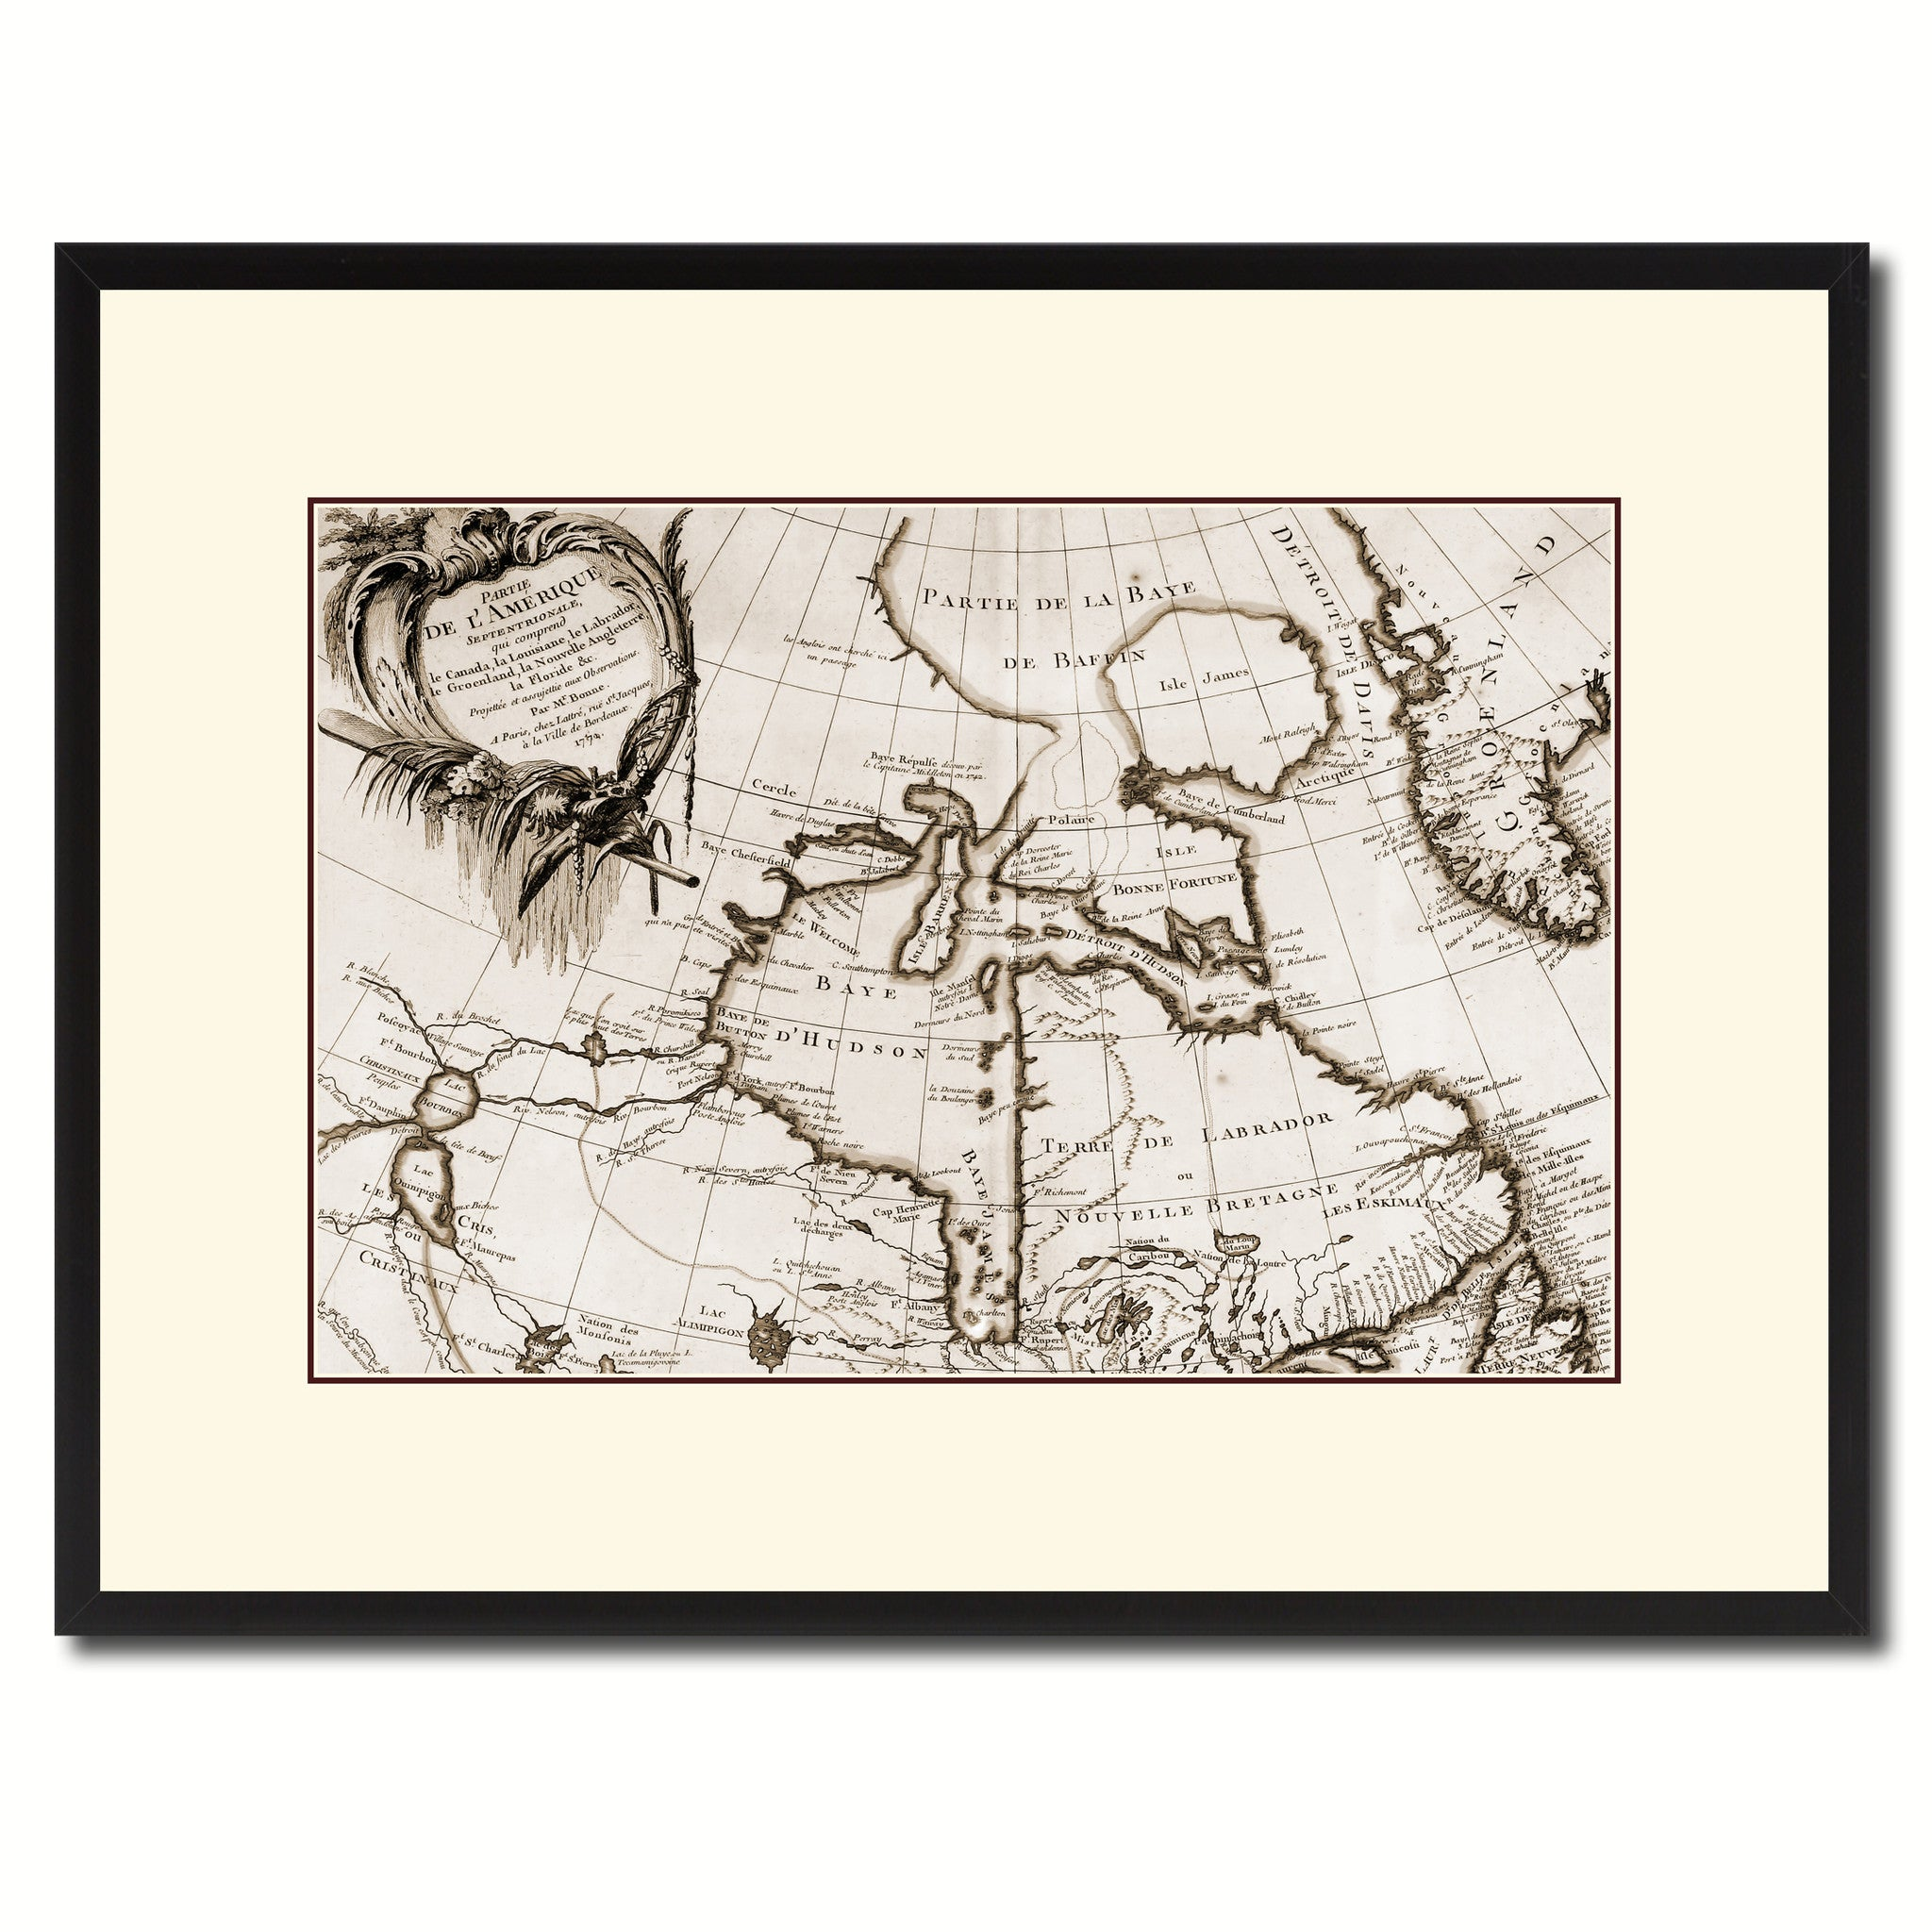 North East Canada & Greenland Vintage Sepia Map Canvas Print, Picture Frame Gifts Home Decor Wall Art Decoration